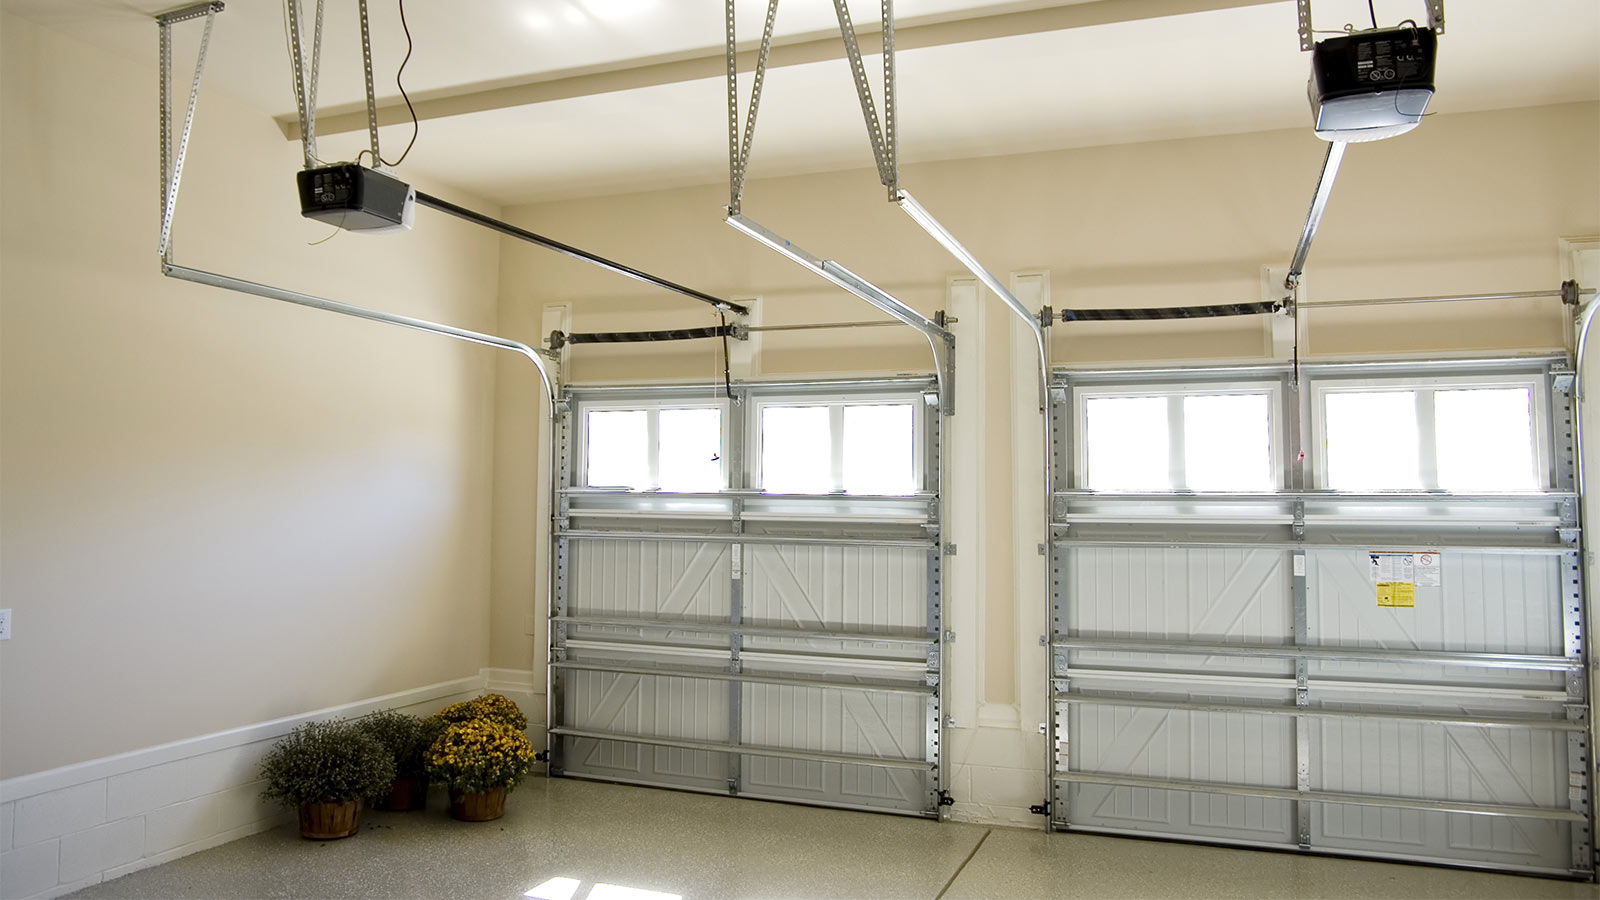 Sectional Garage Doors from Security Gates Grays suppliers.